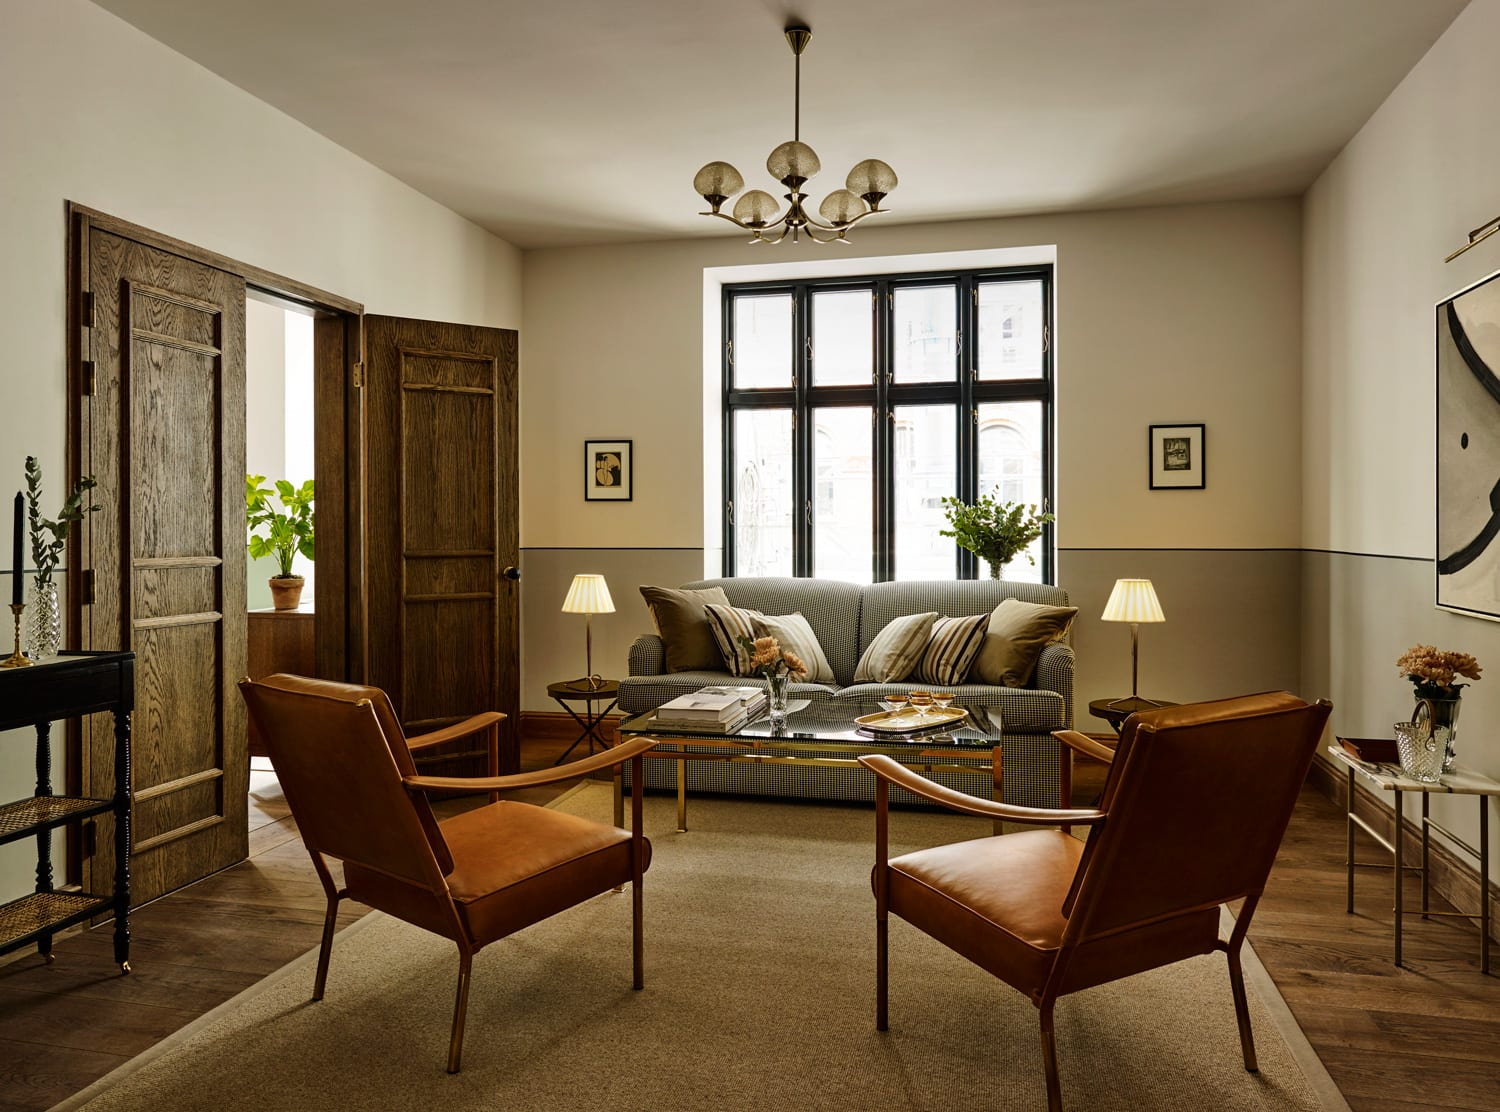 Sanders boutique hotel in copenhagen by lind almond for Boutique hotel